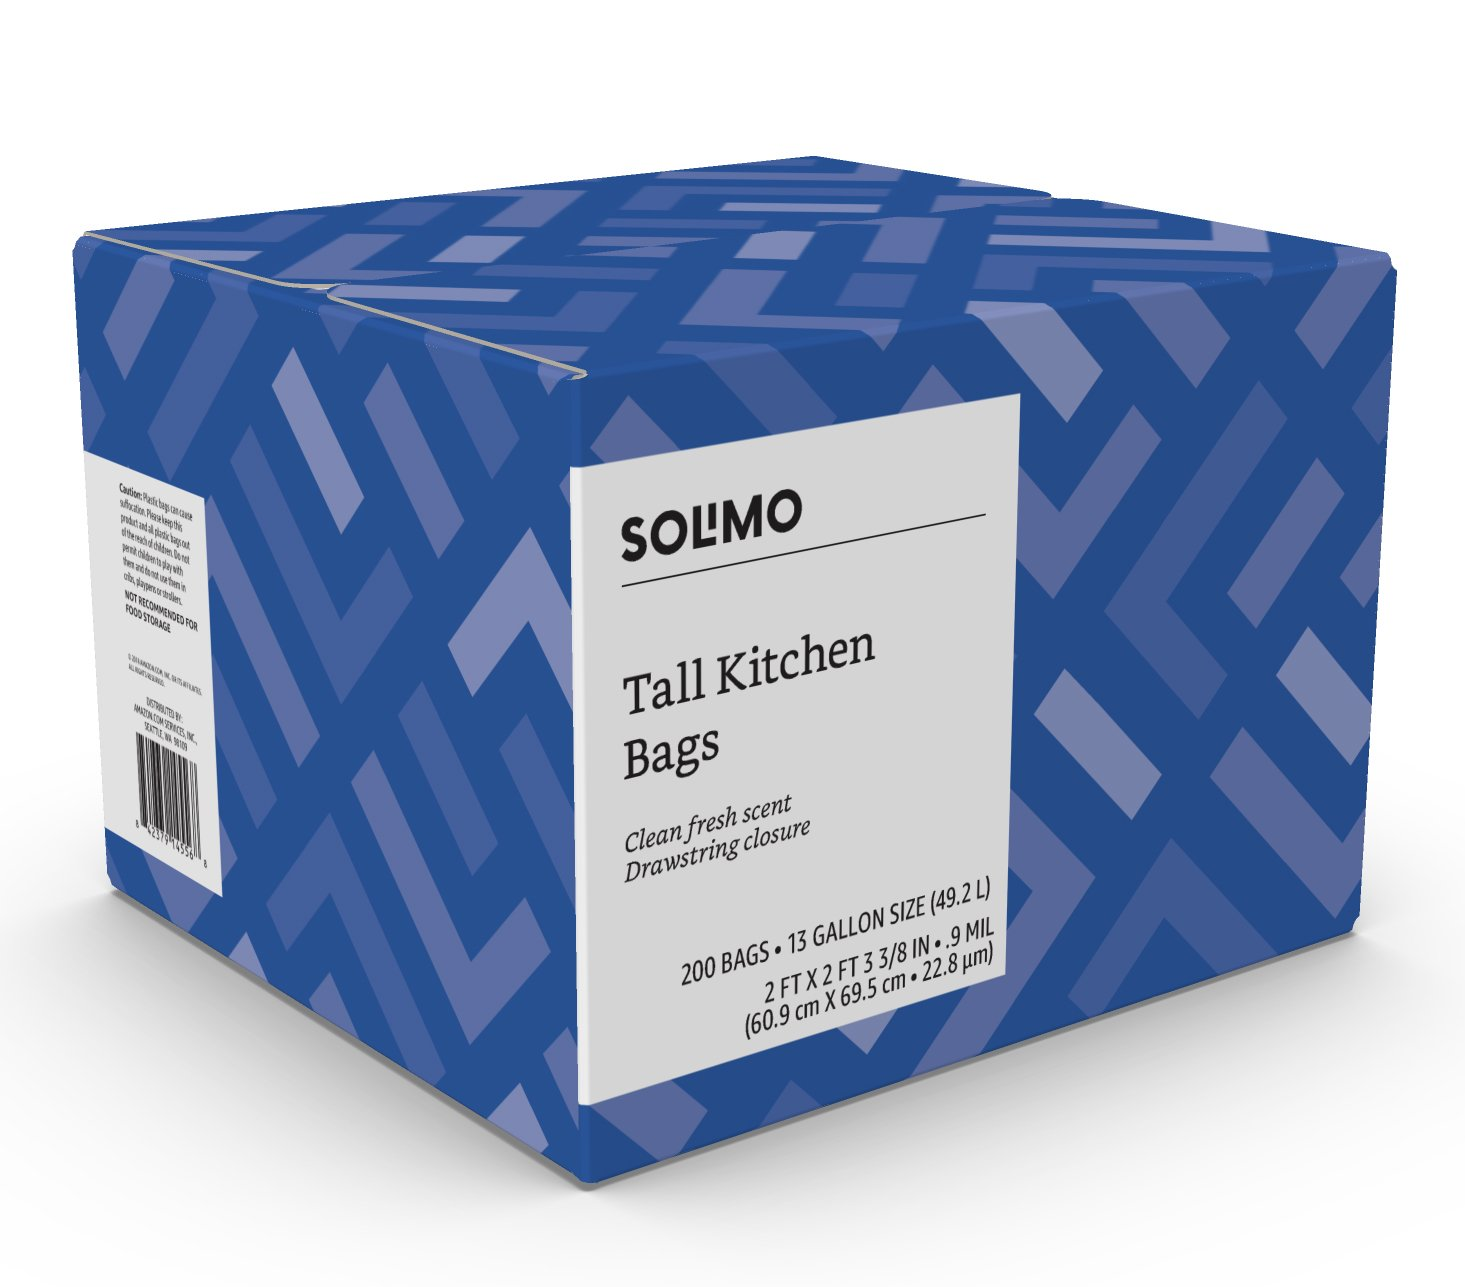 Amazon Brand - Solimo Tall Kitchen Drawstring Trash Bags, Clean Fresh Scent, 13 Gallon, 200 Count by SOLIMO (Image #4)